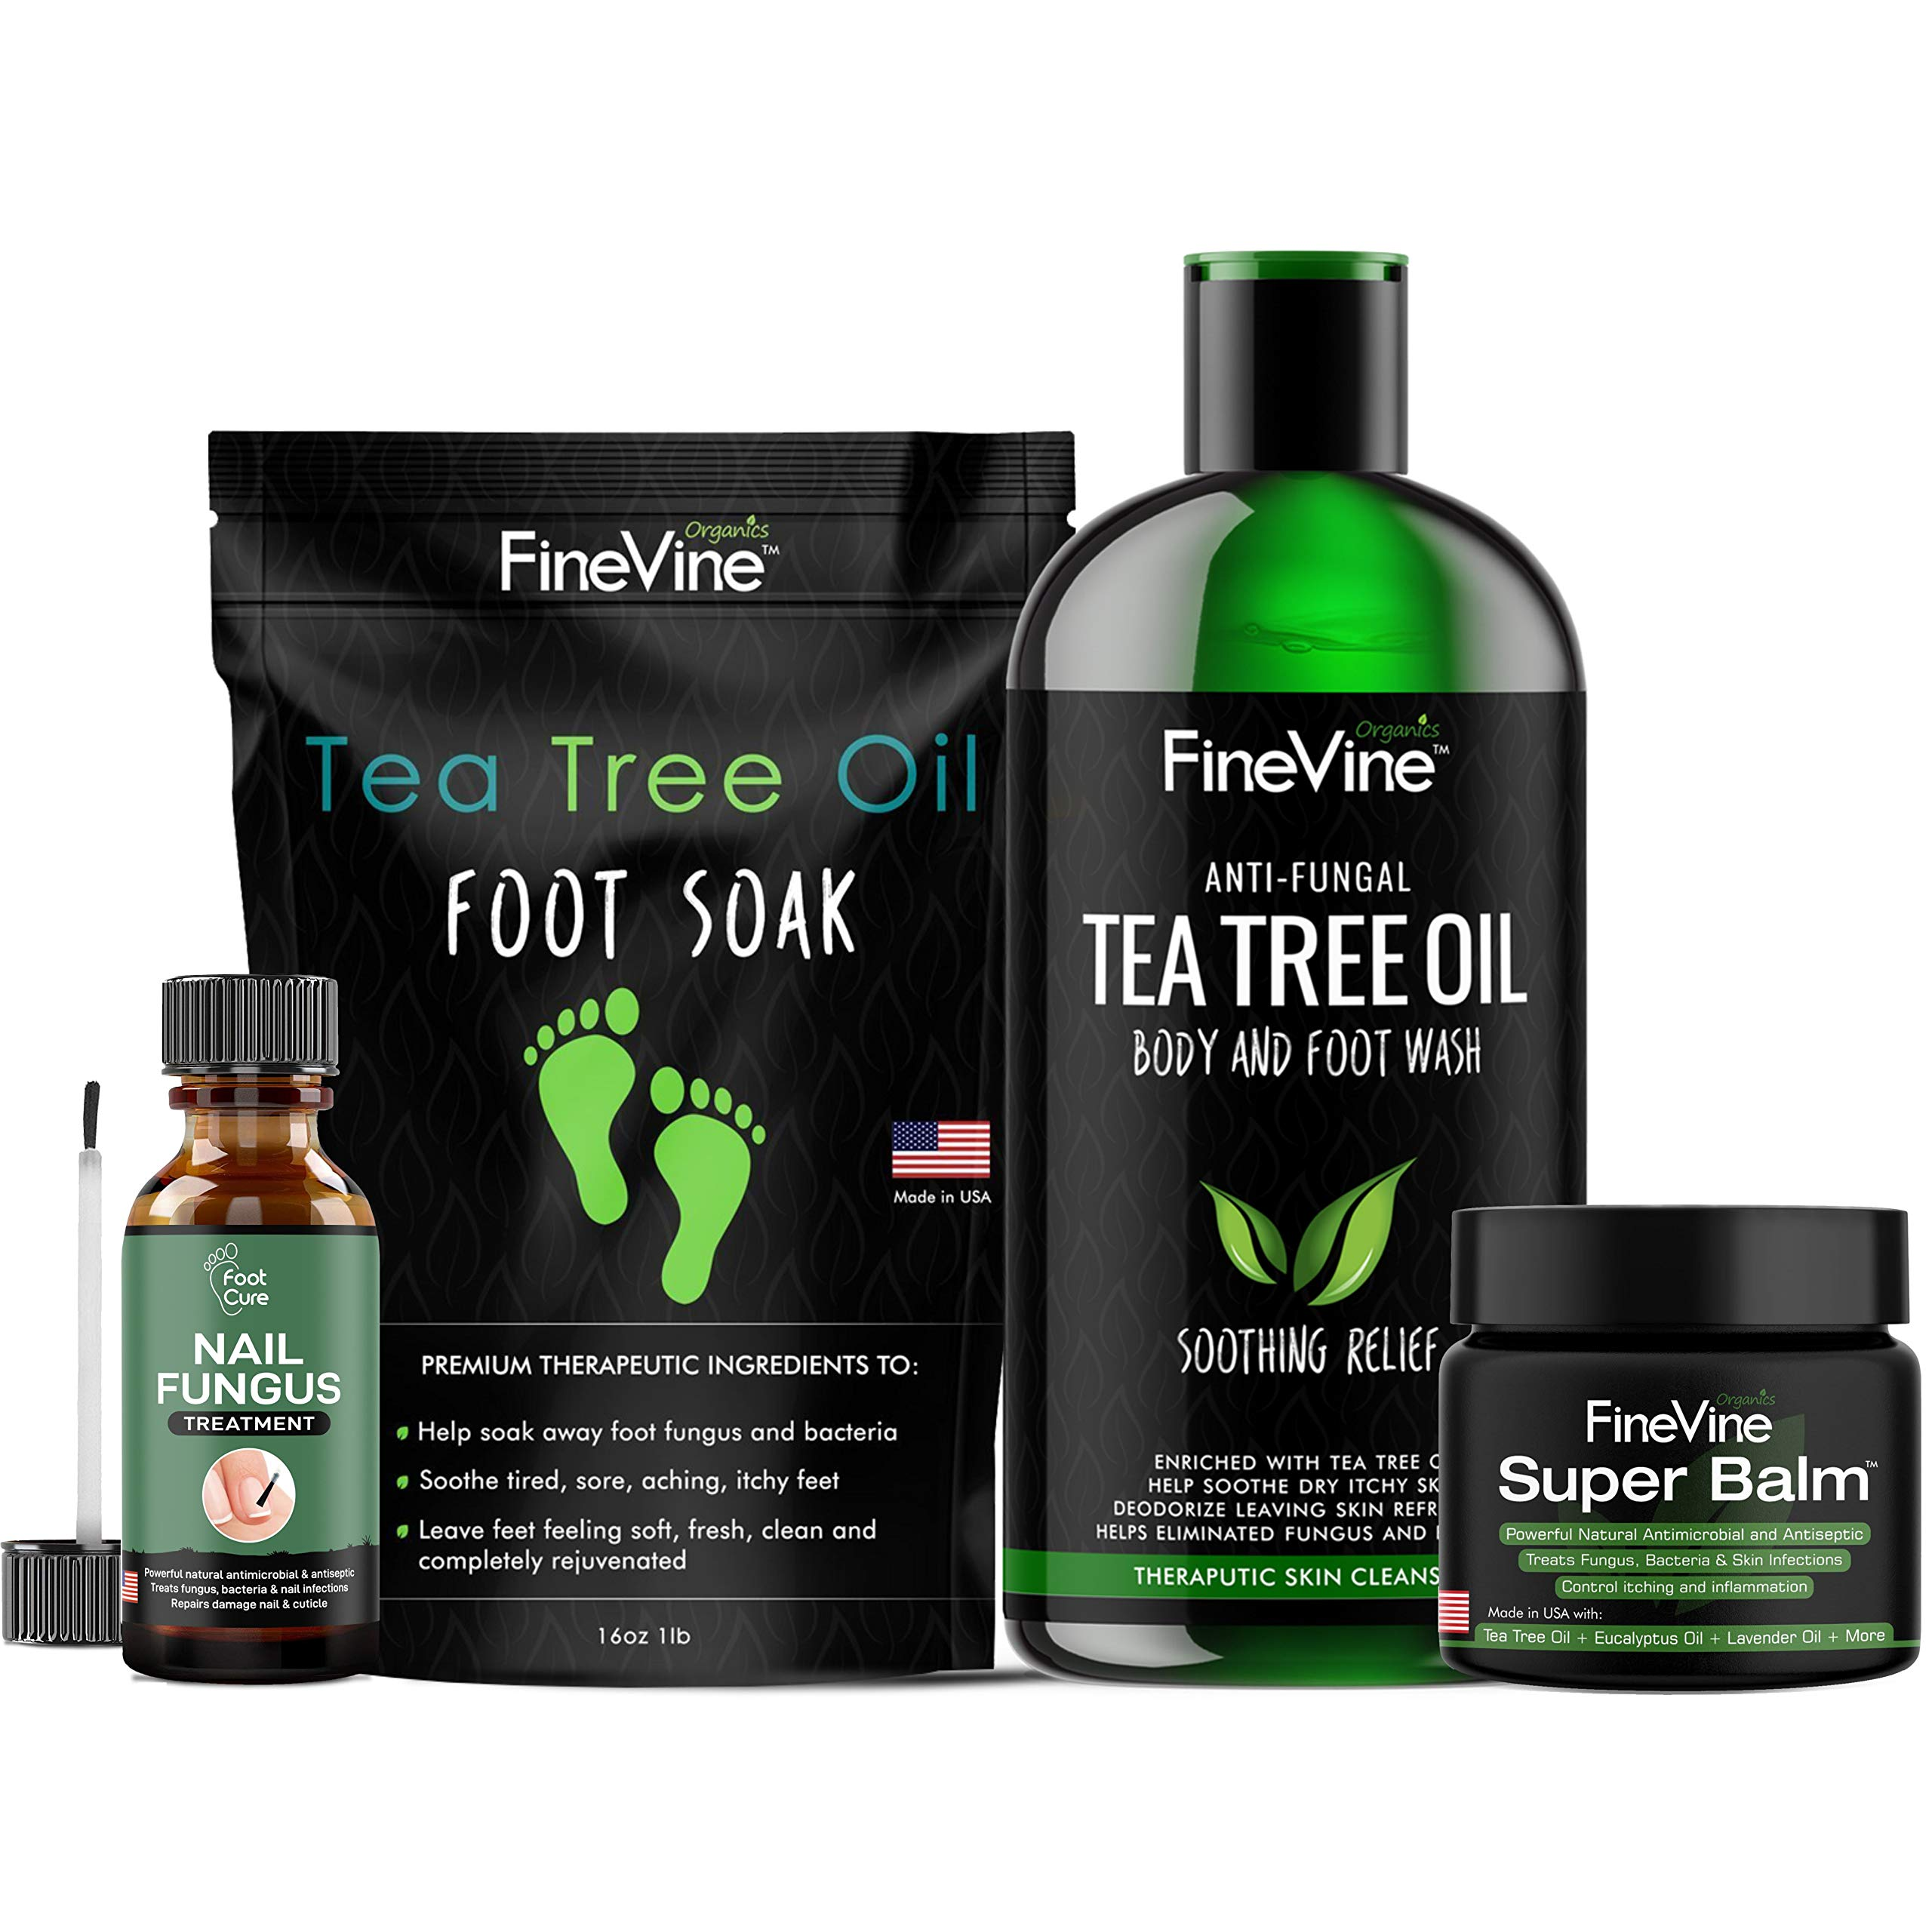 4 IN 1 FOOT CARE Treatment Kit, Made in USA, Includes Tea Tree Body Wash, Tea Tree Oil Foot Soak, Anti-Fungal Skin Balm and Toenail Fungus Remover - Get Rid of Bad Odor, Fungi and Athletes Foot. by FineVine Organics